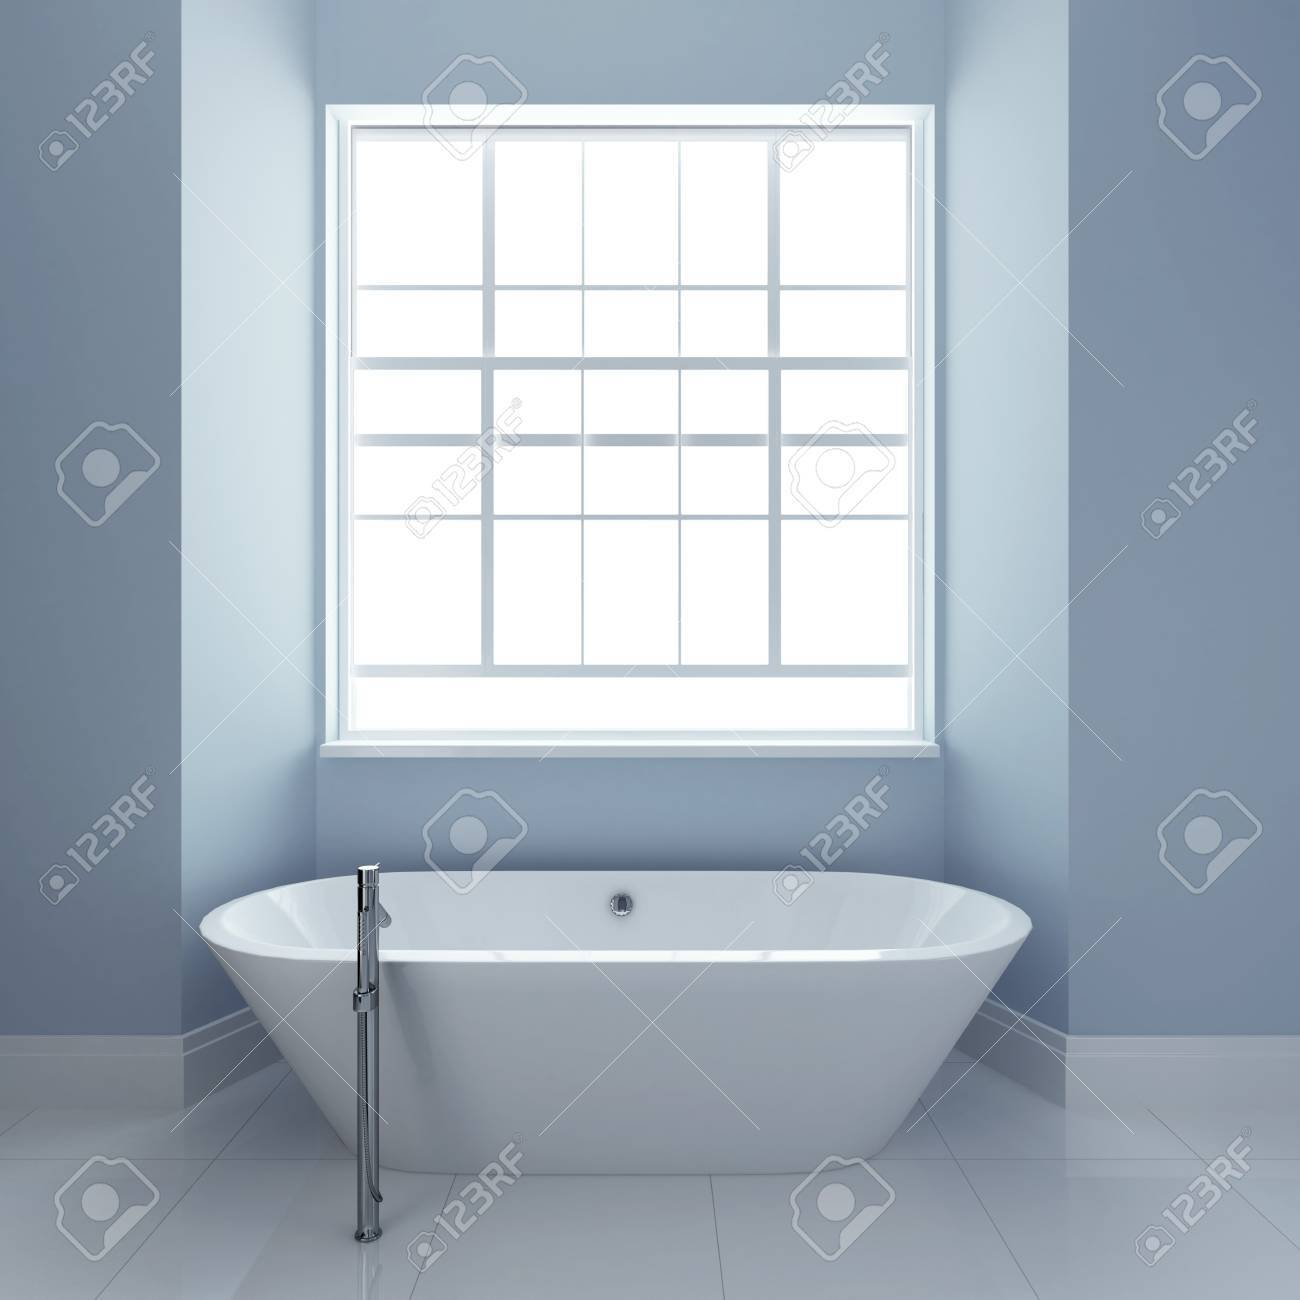 Bathroom With Tub And Windows 3d Render Stock Photo, Picture And ...